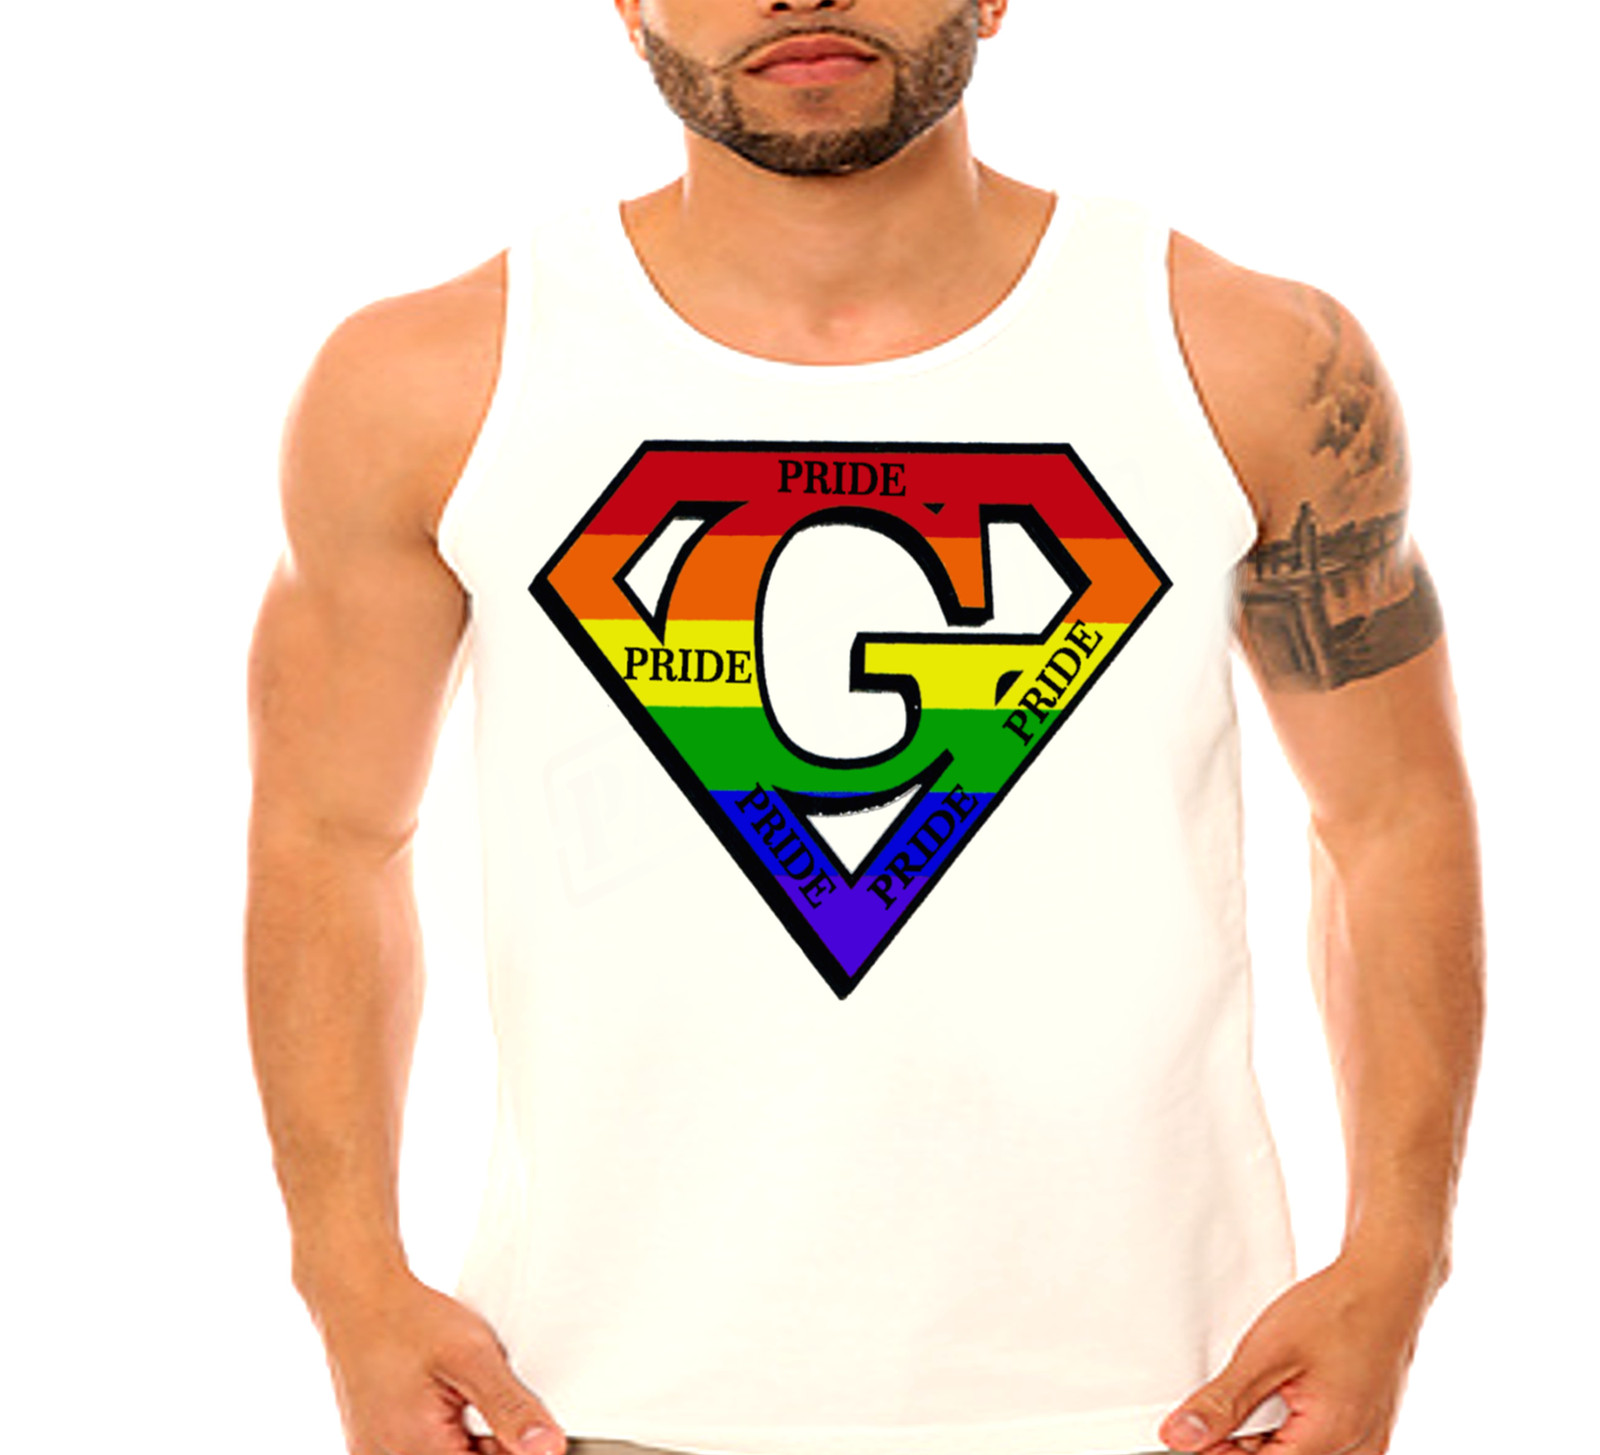 2a0bbfe7422c1c ... Pride Rainbow LGBT Men s Tank and 50 similar items. Pride2 white tank